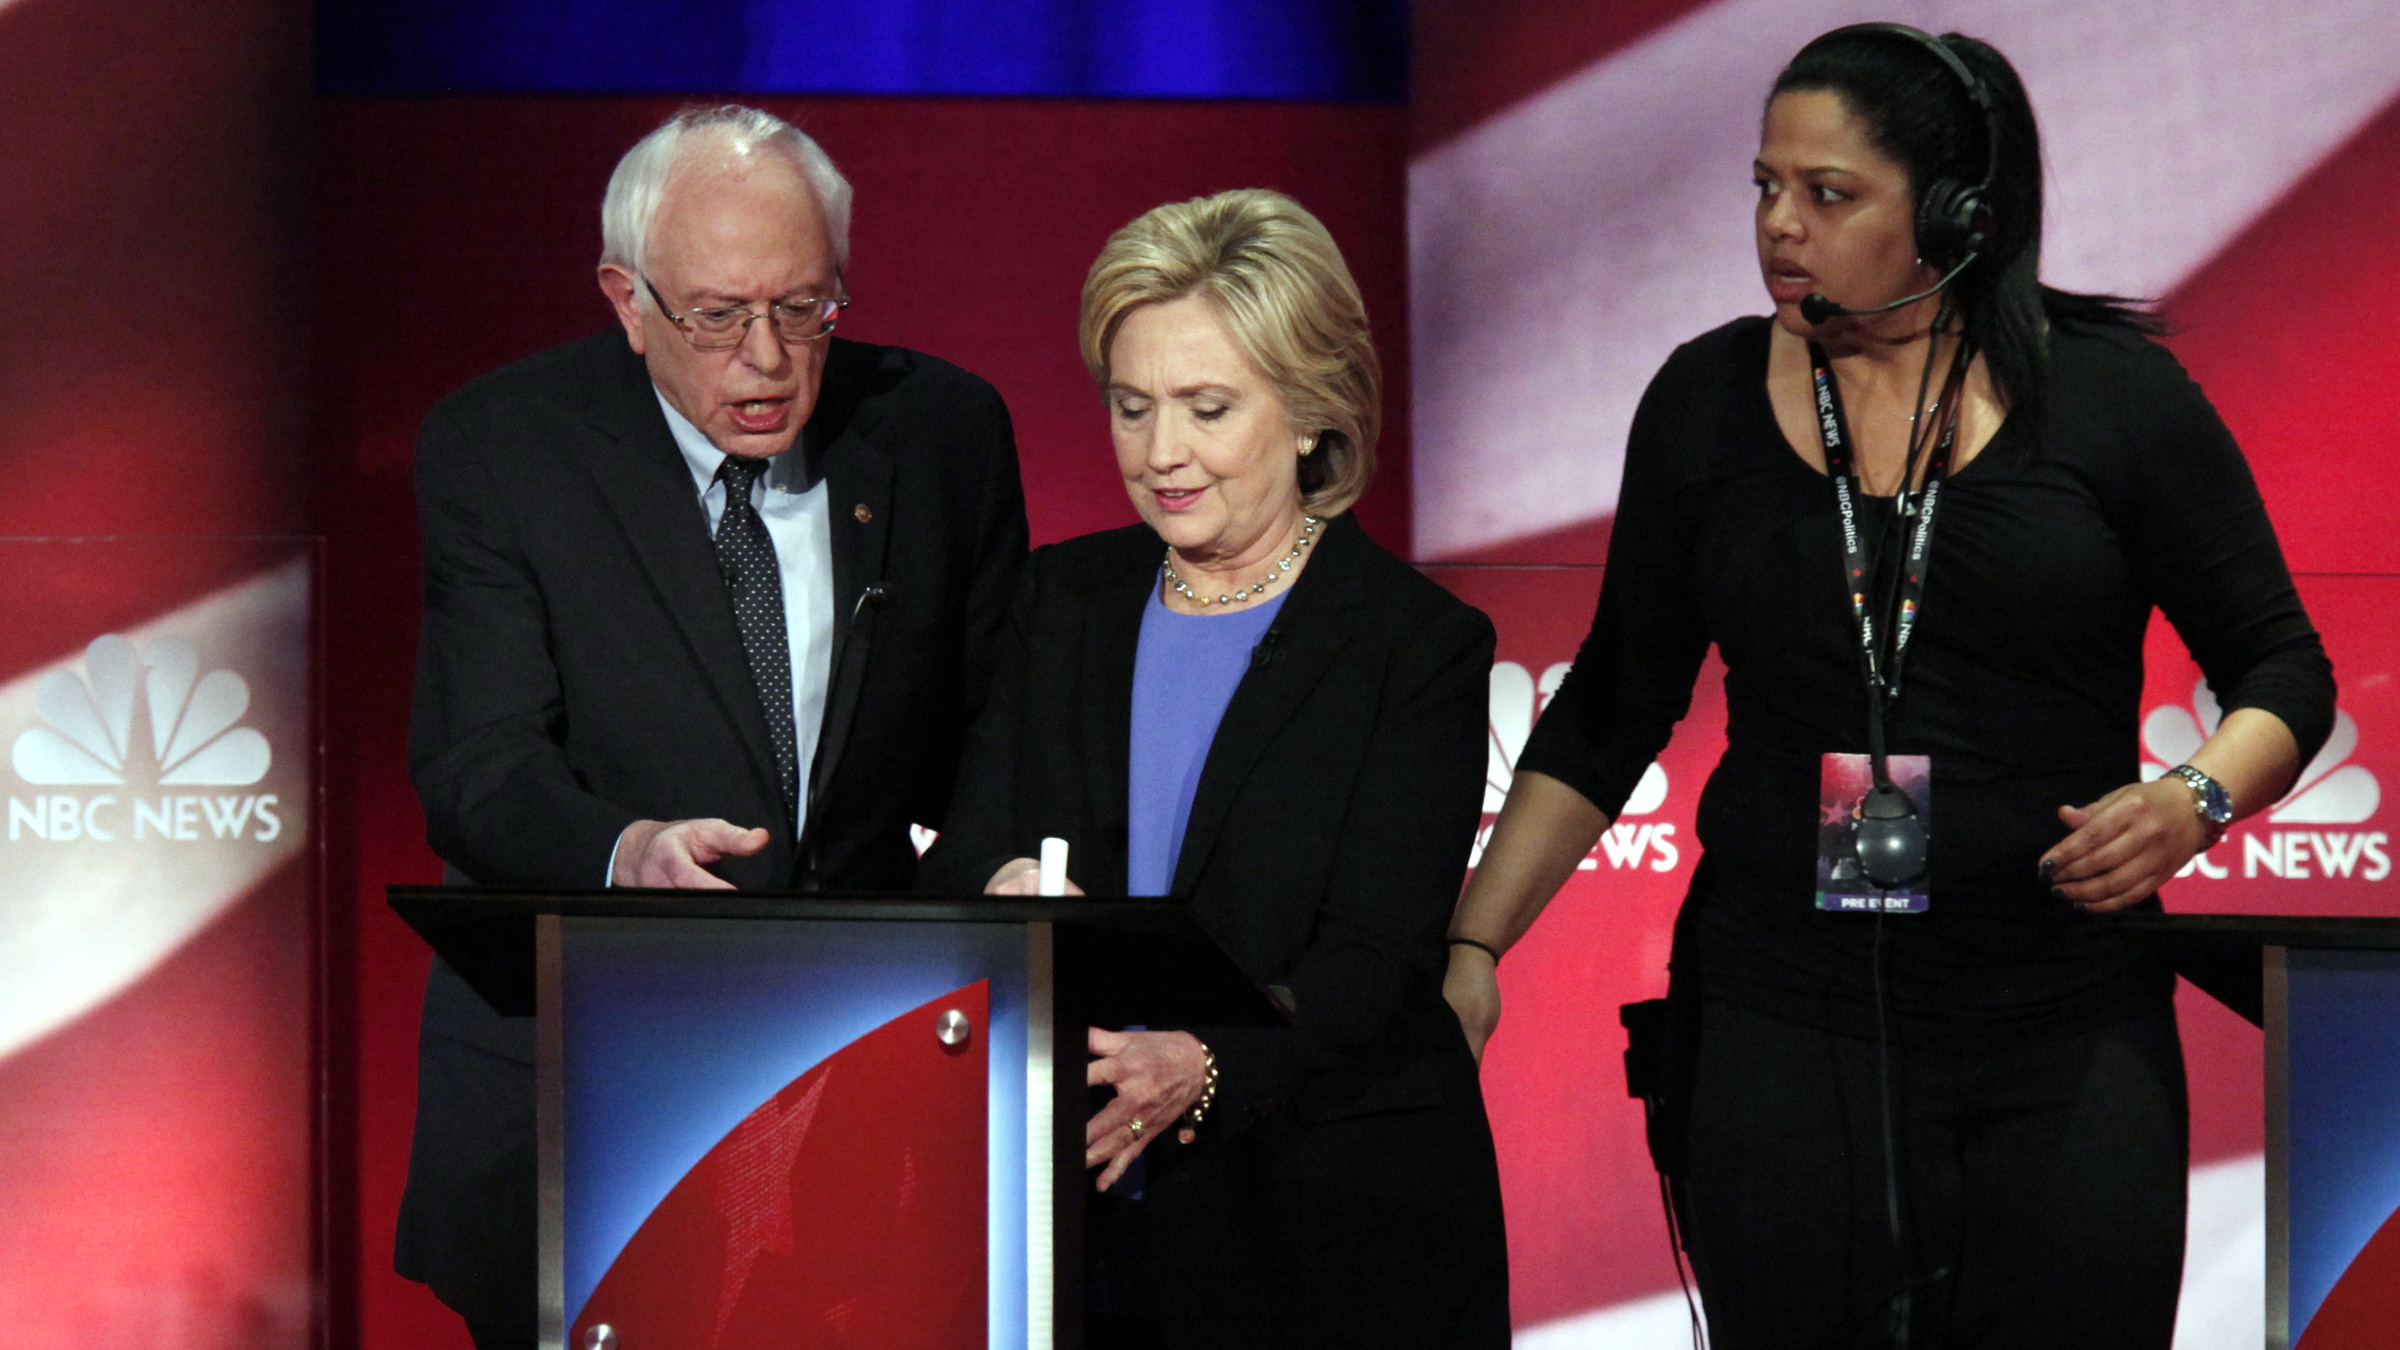 Democratic U.S. presidential candidate and U.S. Senator Bernie Sanders (L) assists rival candidate and former Secretary of State Hillary Clinton (C) with something at her podium as a network staff member (R) looks on during a break at the NBC News - YouTube Democratic presidential candidates debate in Charleston, South Carolina January 17, 2016.